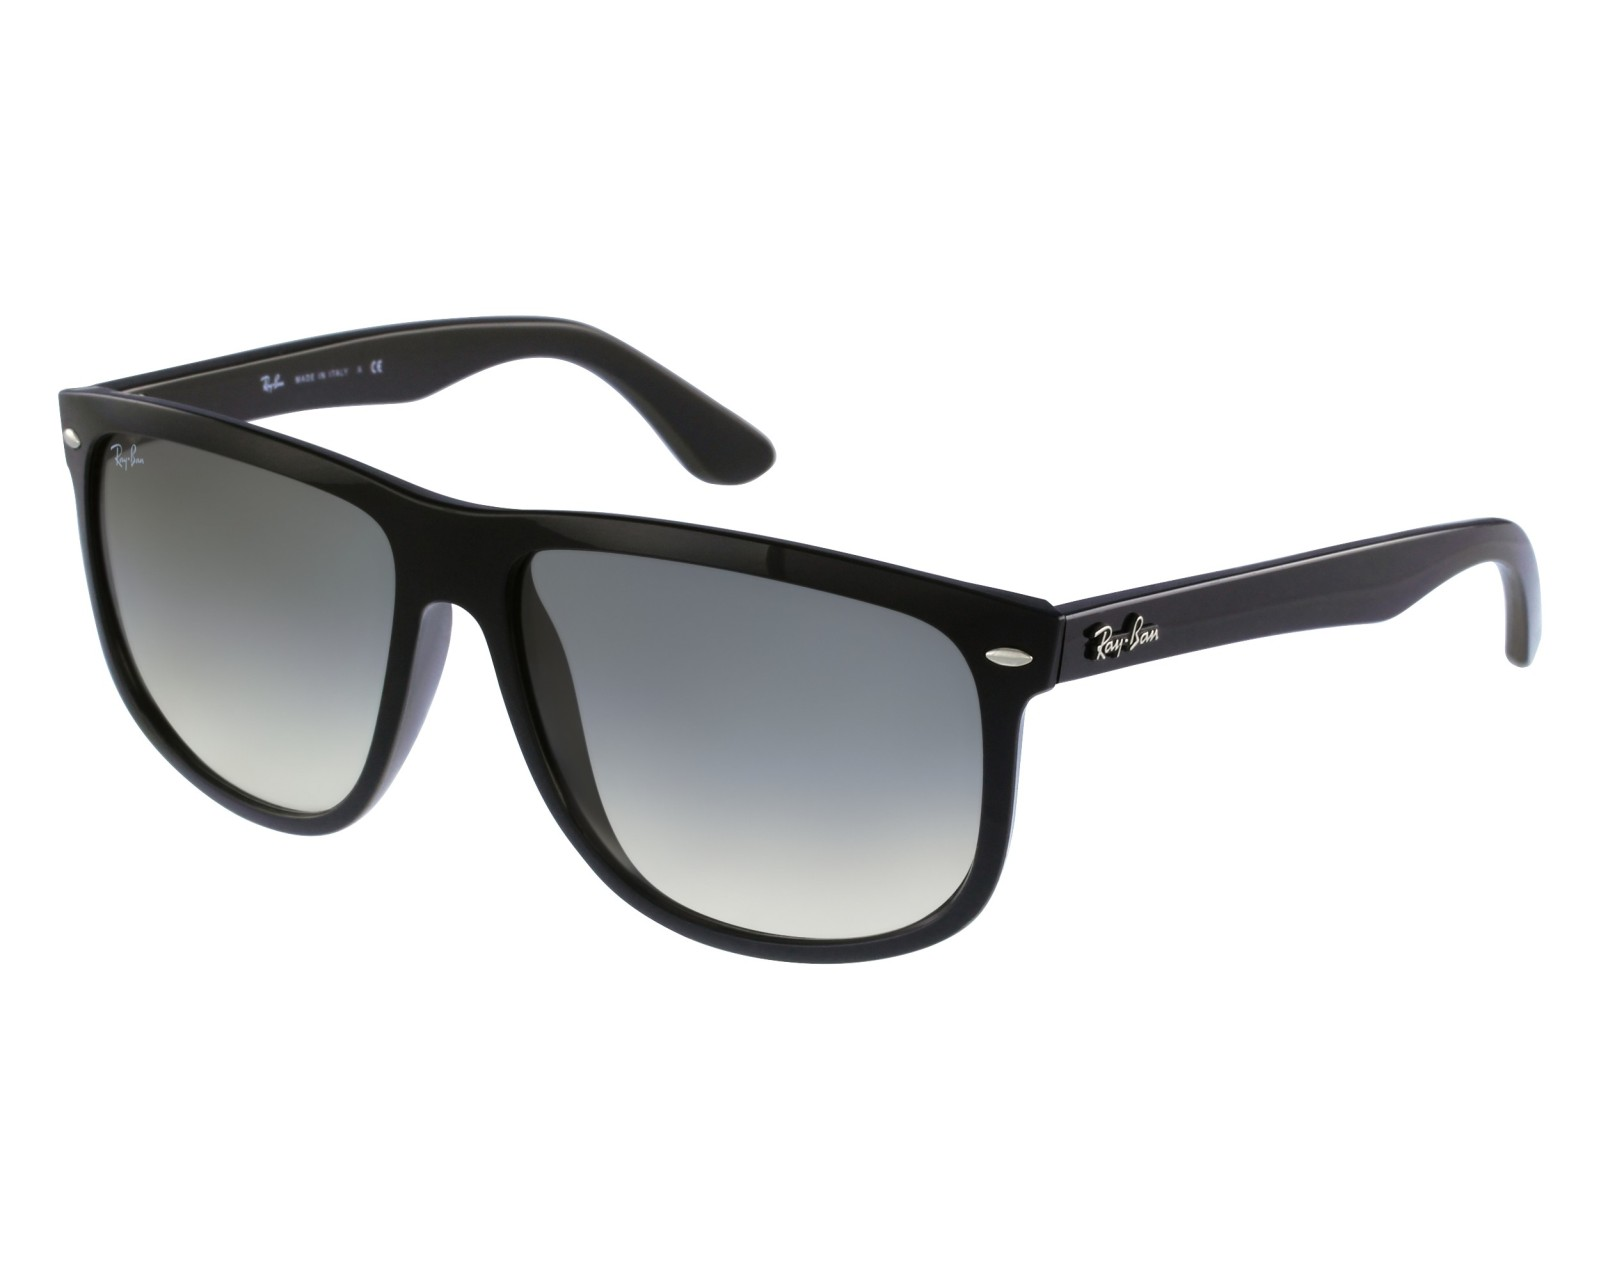 cfb8e0ae8a07 Sunglasses Ray-Ban RB-4147 601 32 60-15 Black Silver front